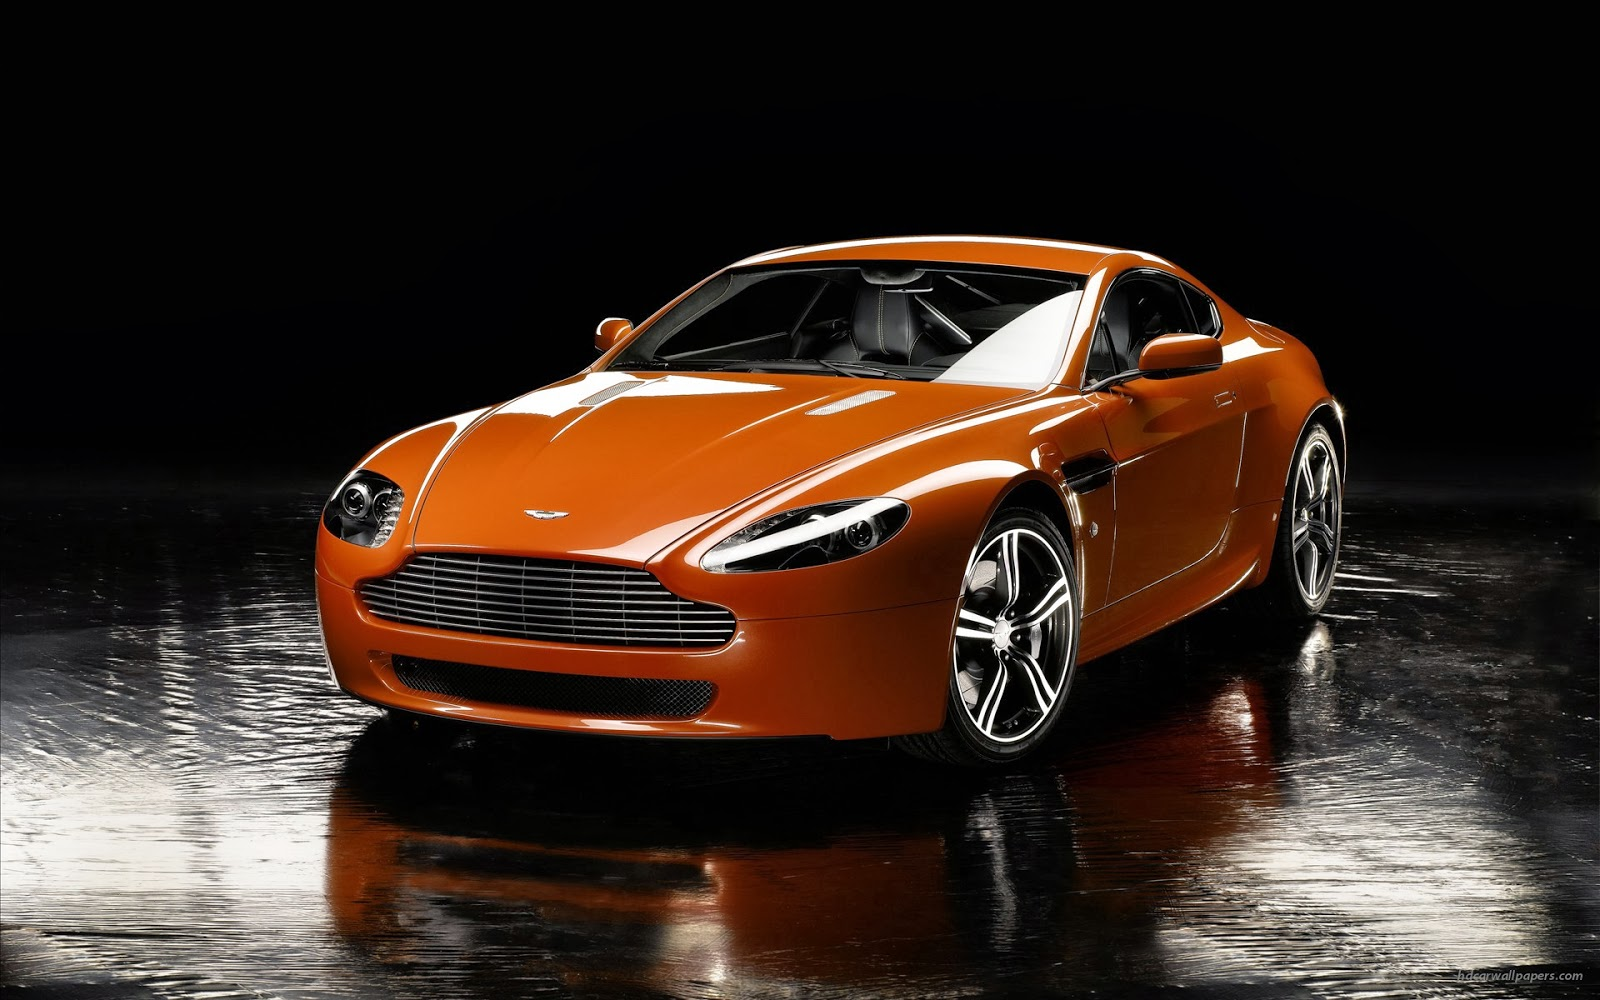 Aston Martin HD Wallpapers - HD Wallpapers Blog